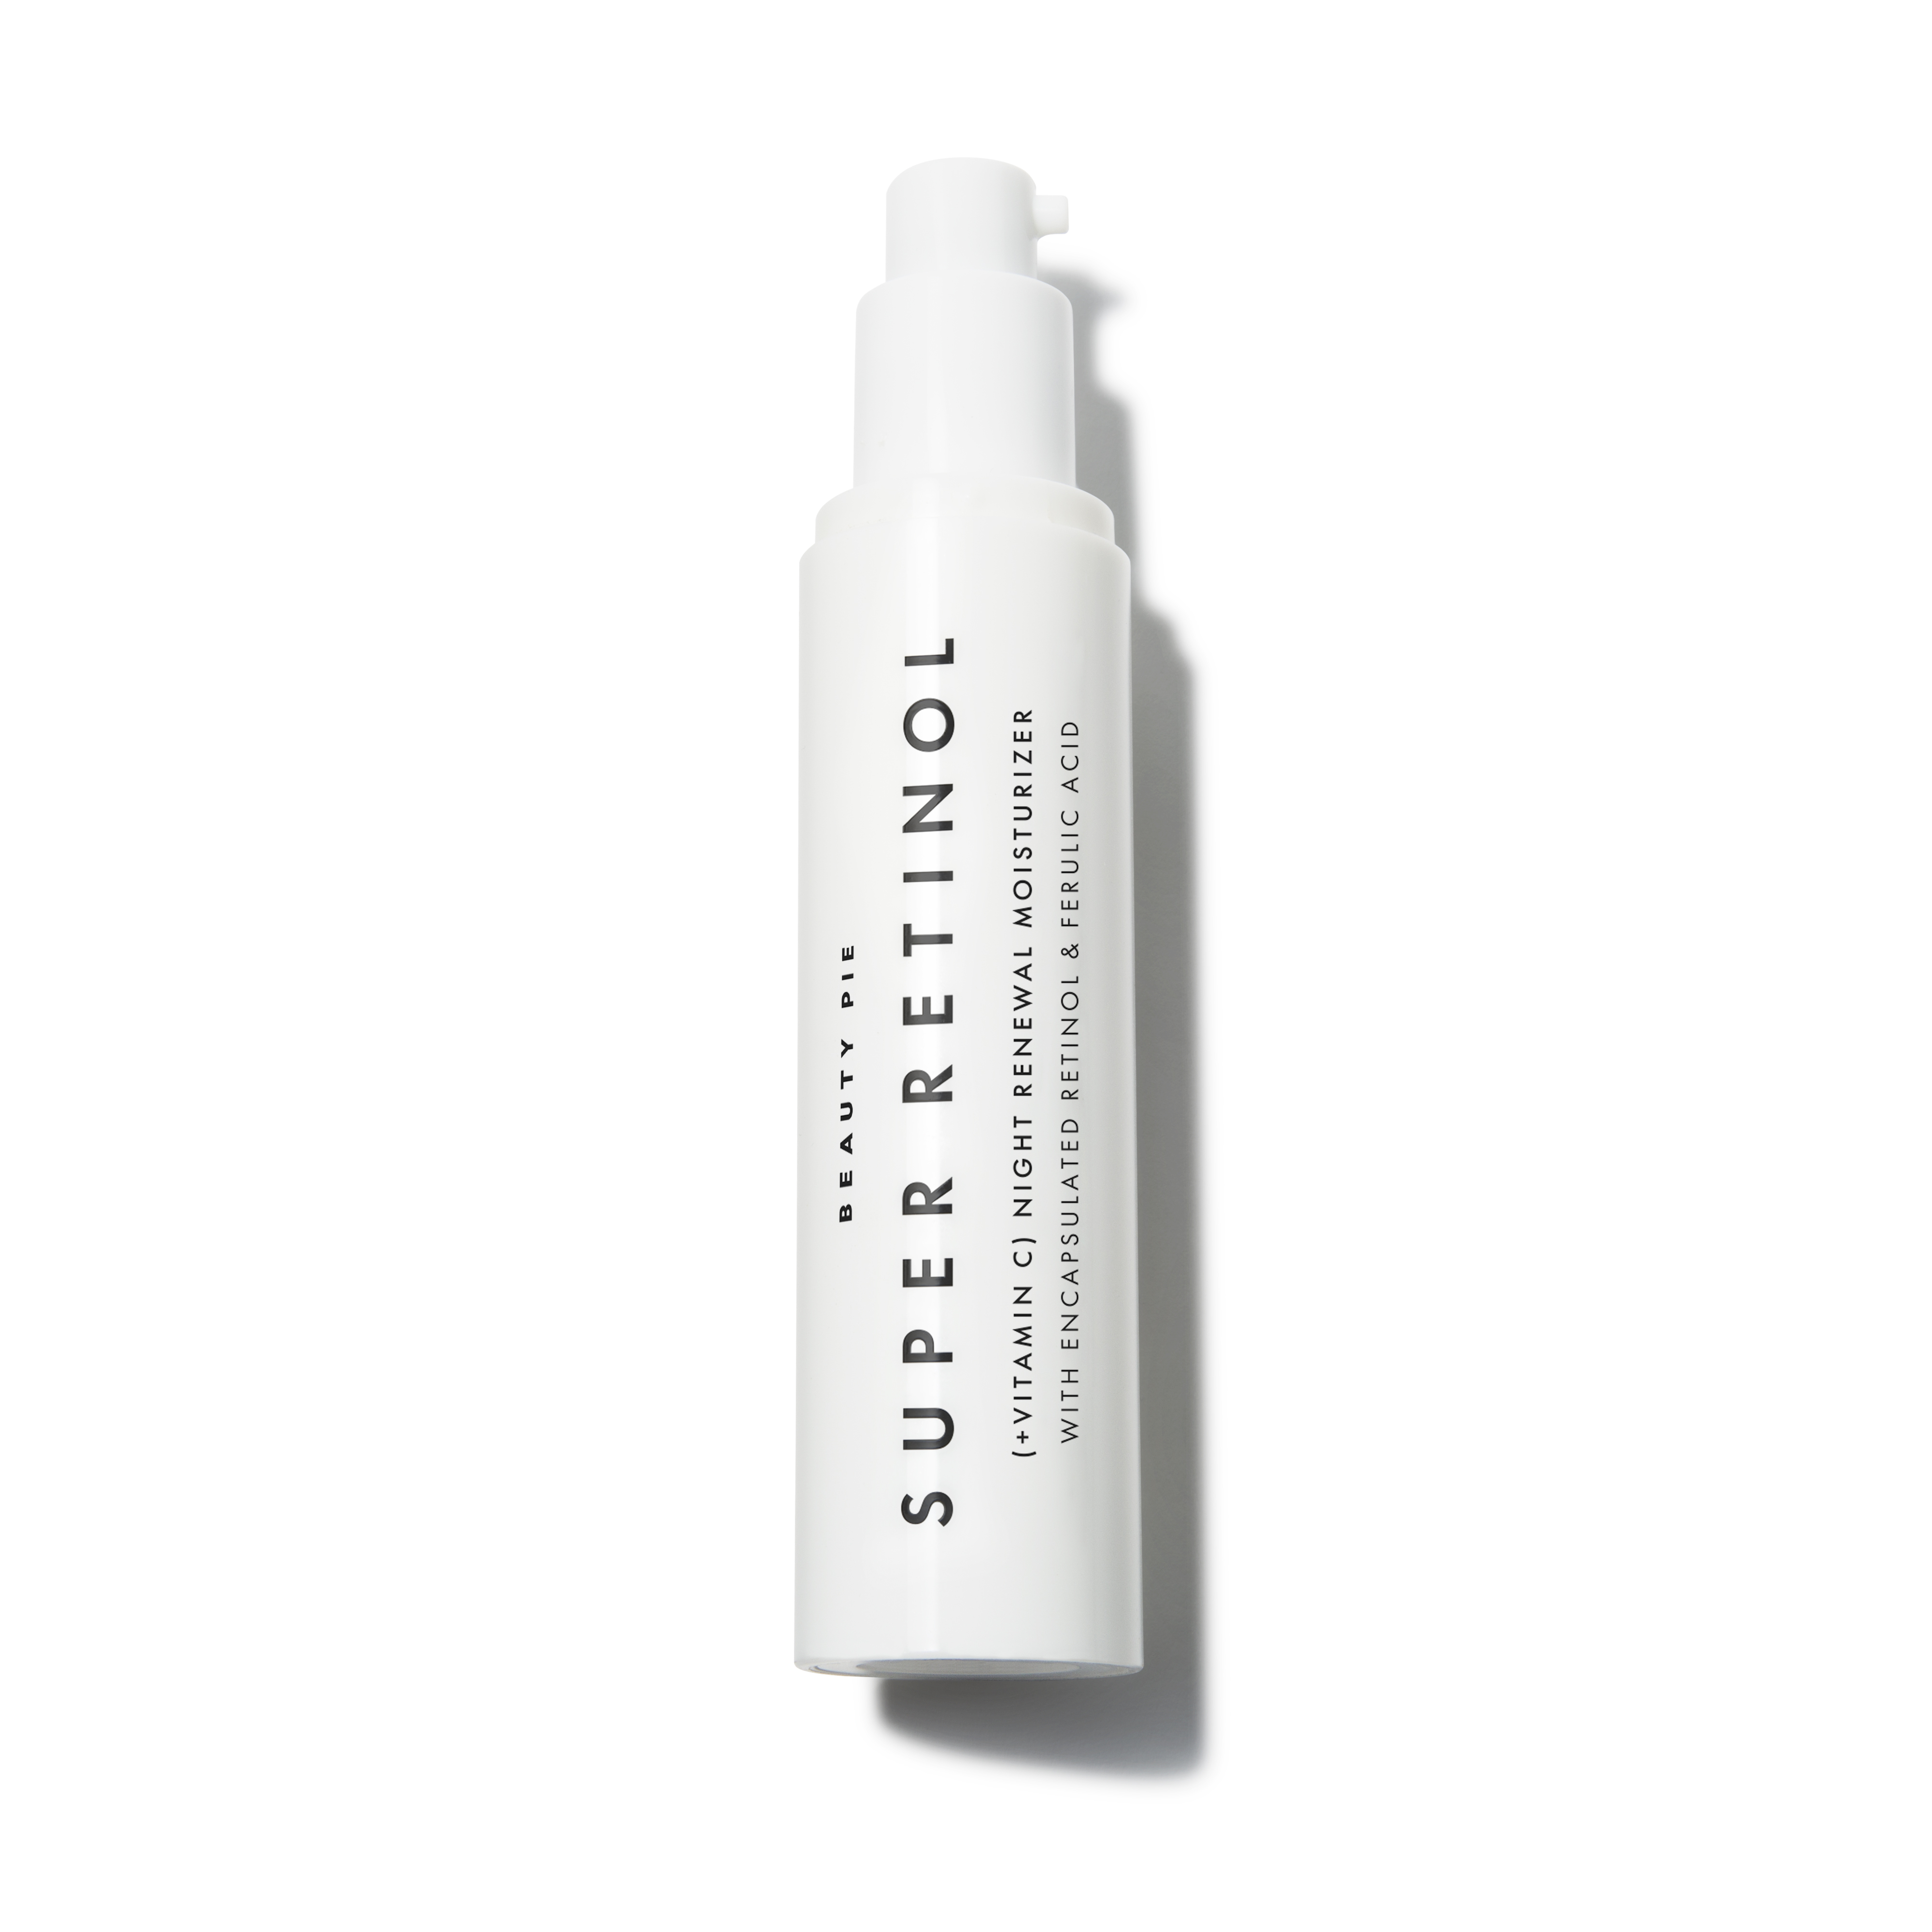 Super Retinol (+ Vitamin C) Night Renewal Moisturizer